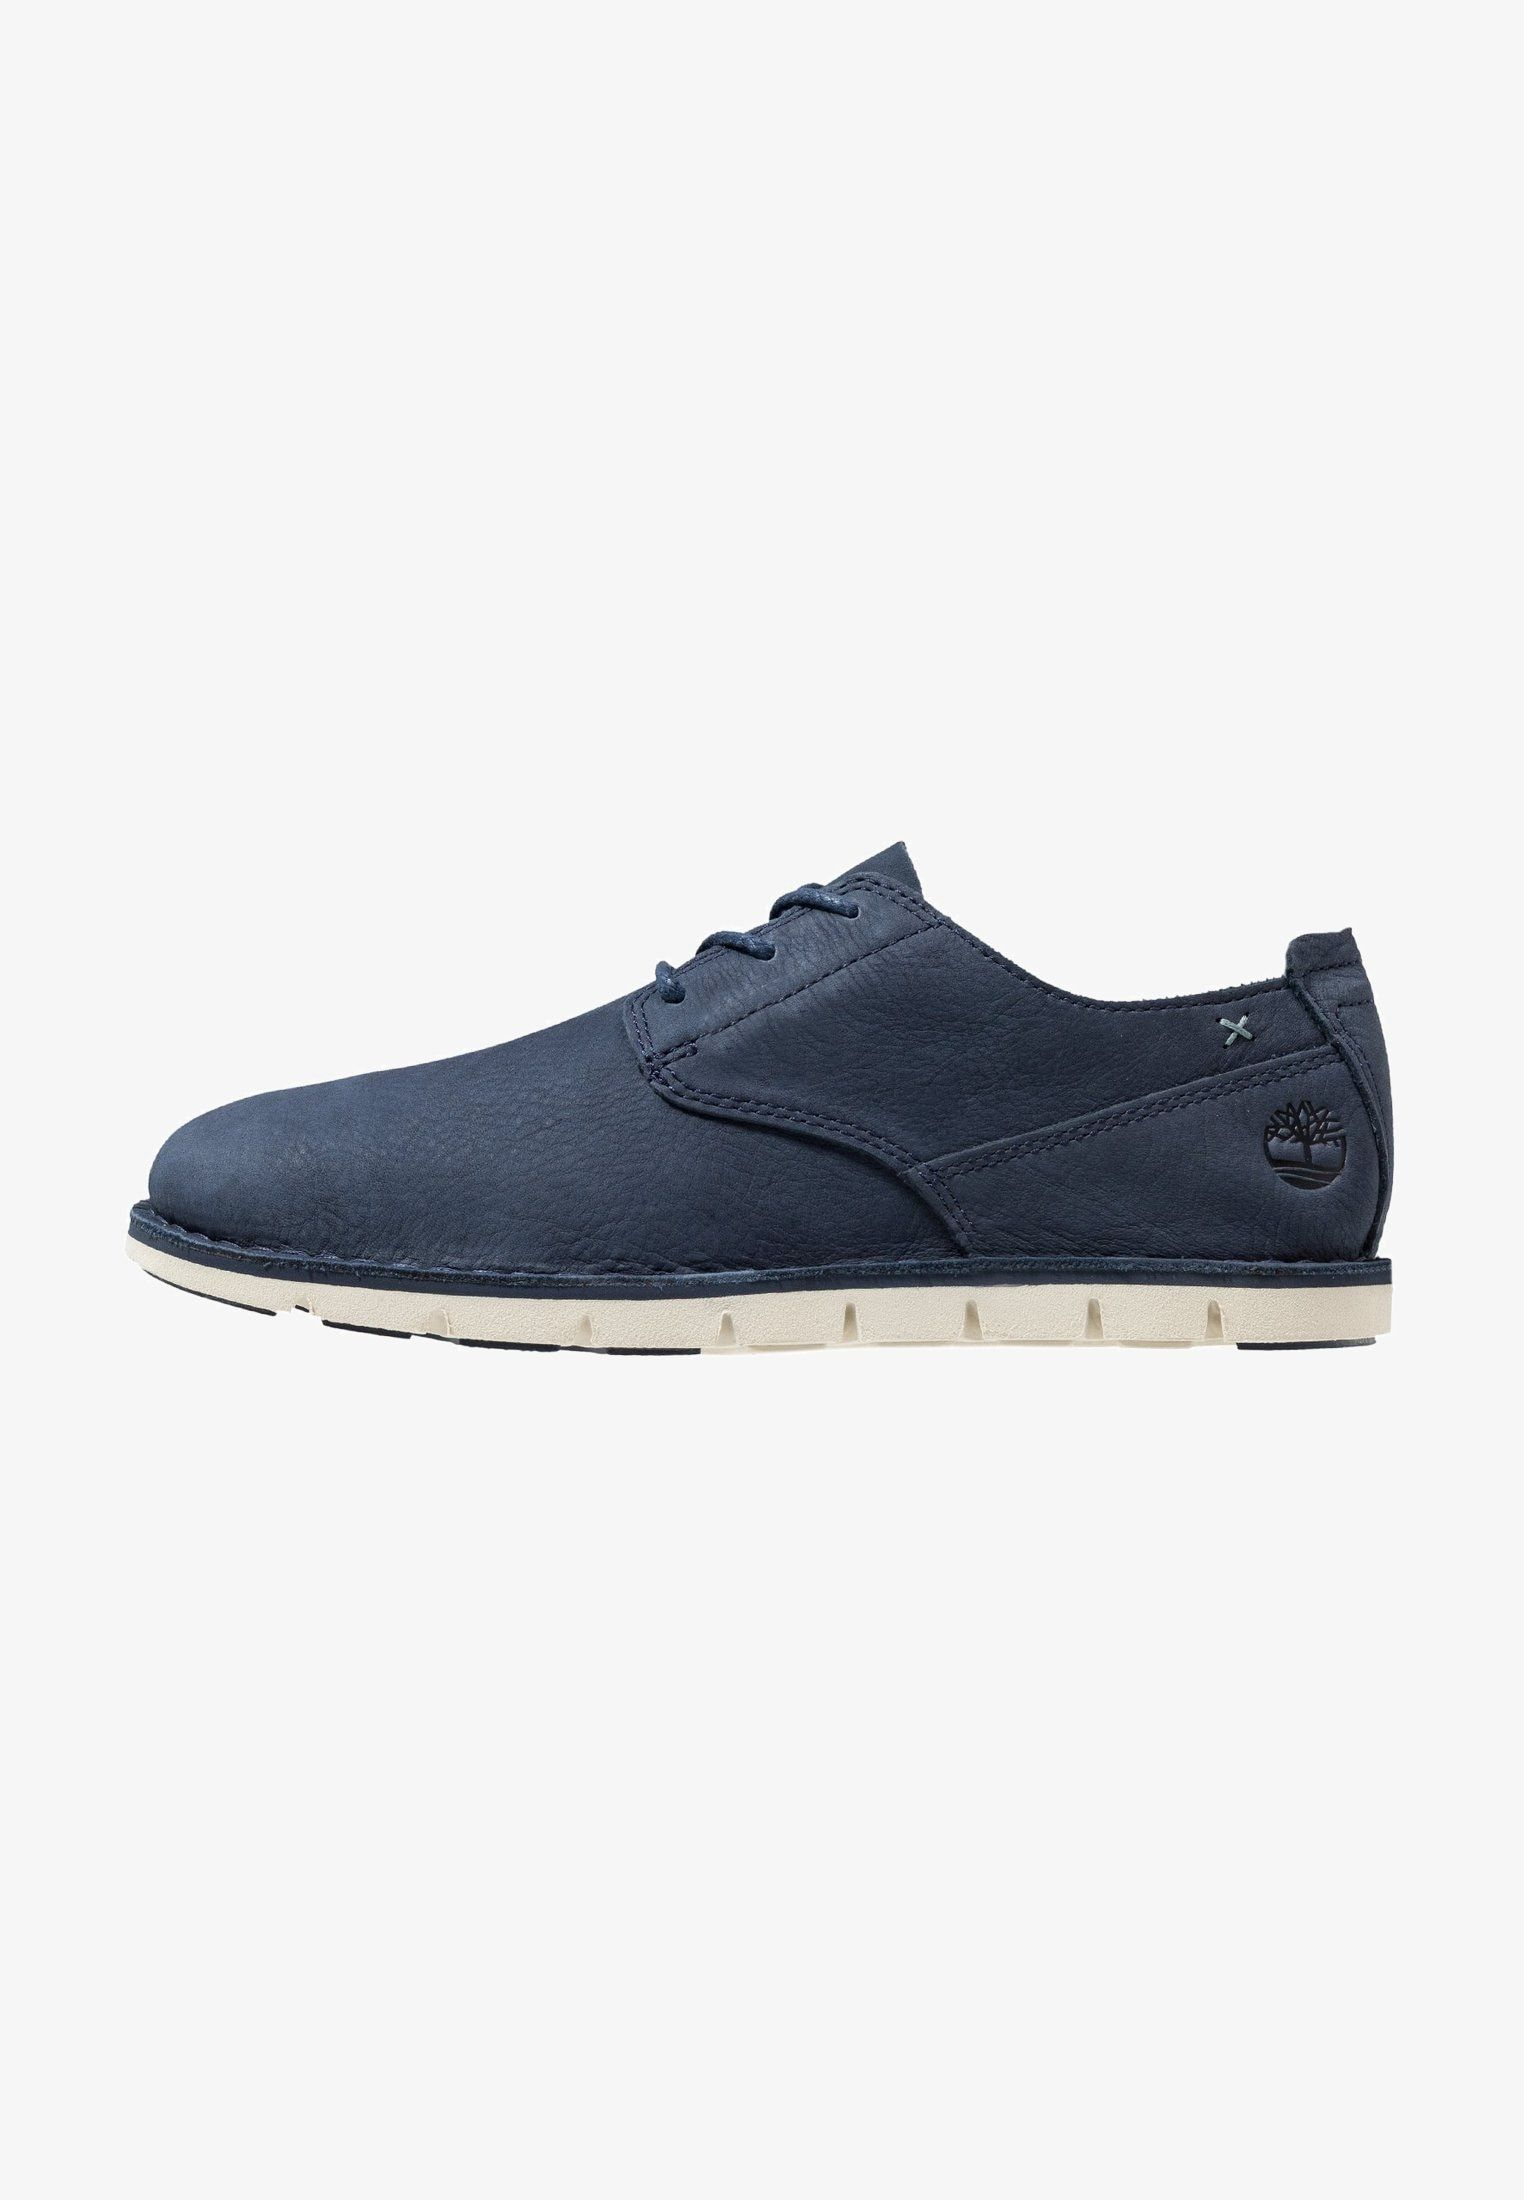 TIDELANDS OXFORD Stringate sportive dark blue @ Zalando